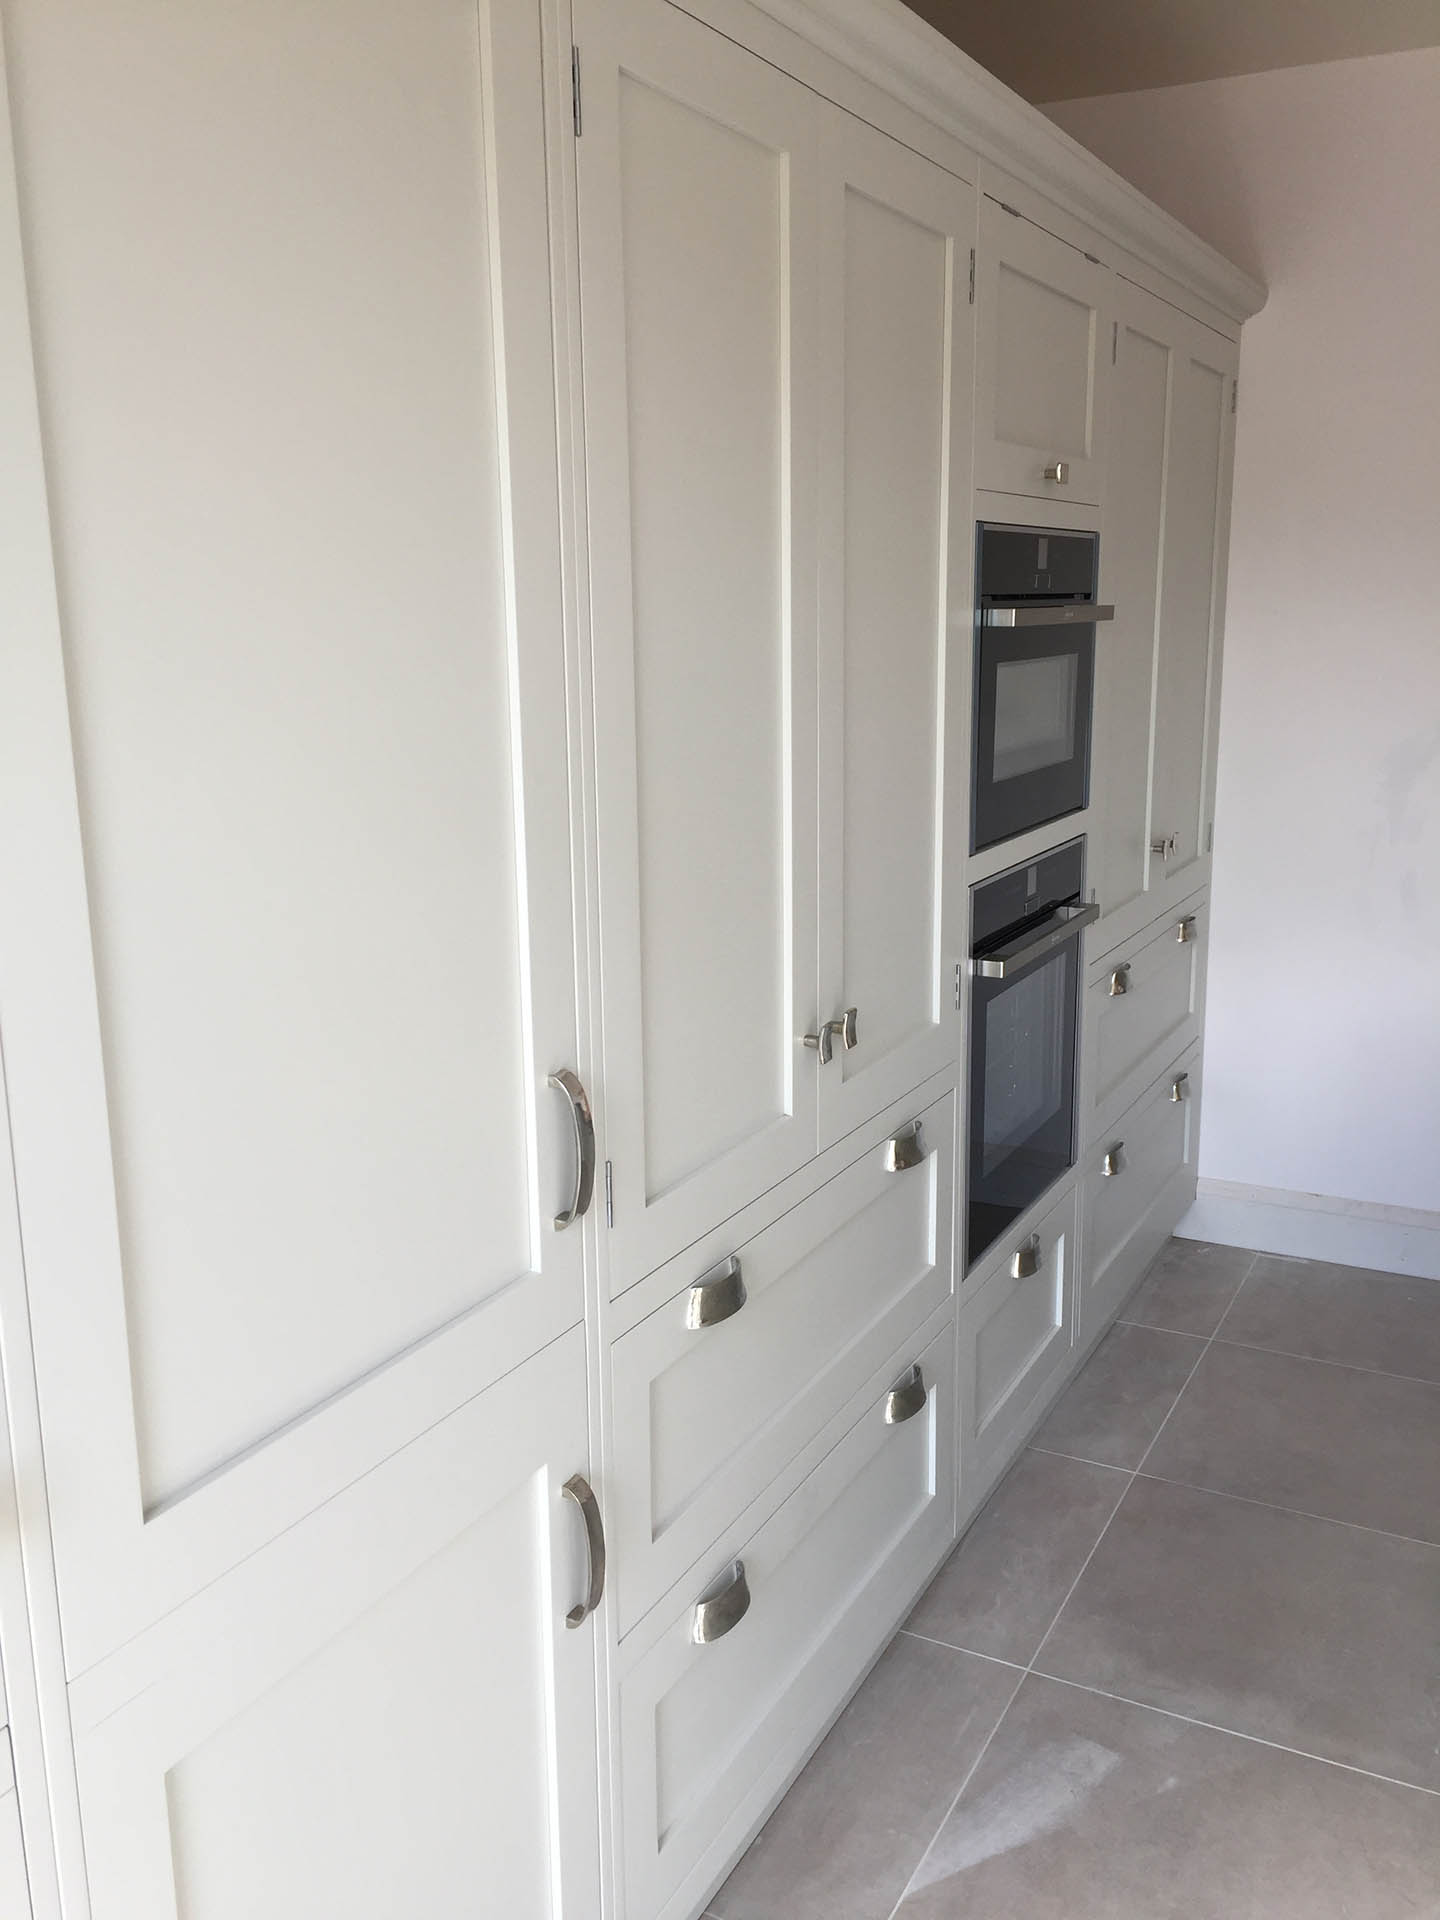 A view of a row of kitchen cupboards with an oven integrated into it.